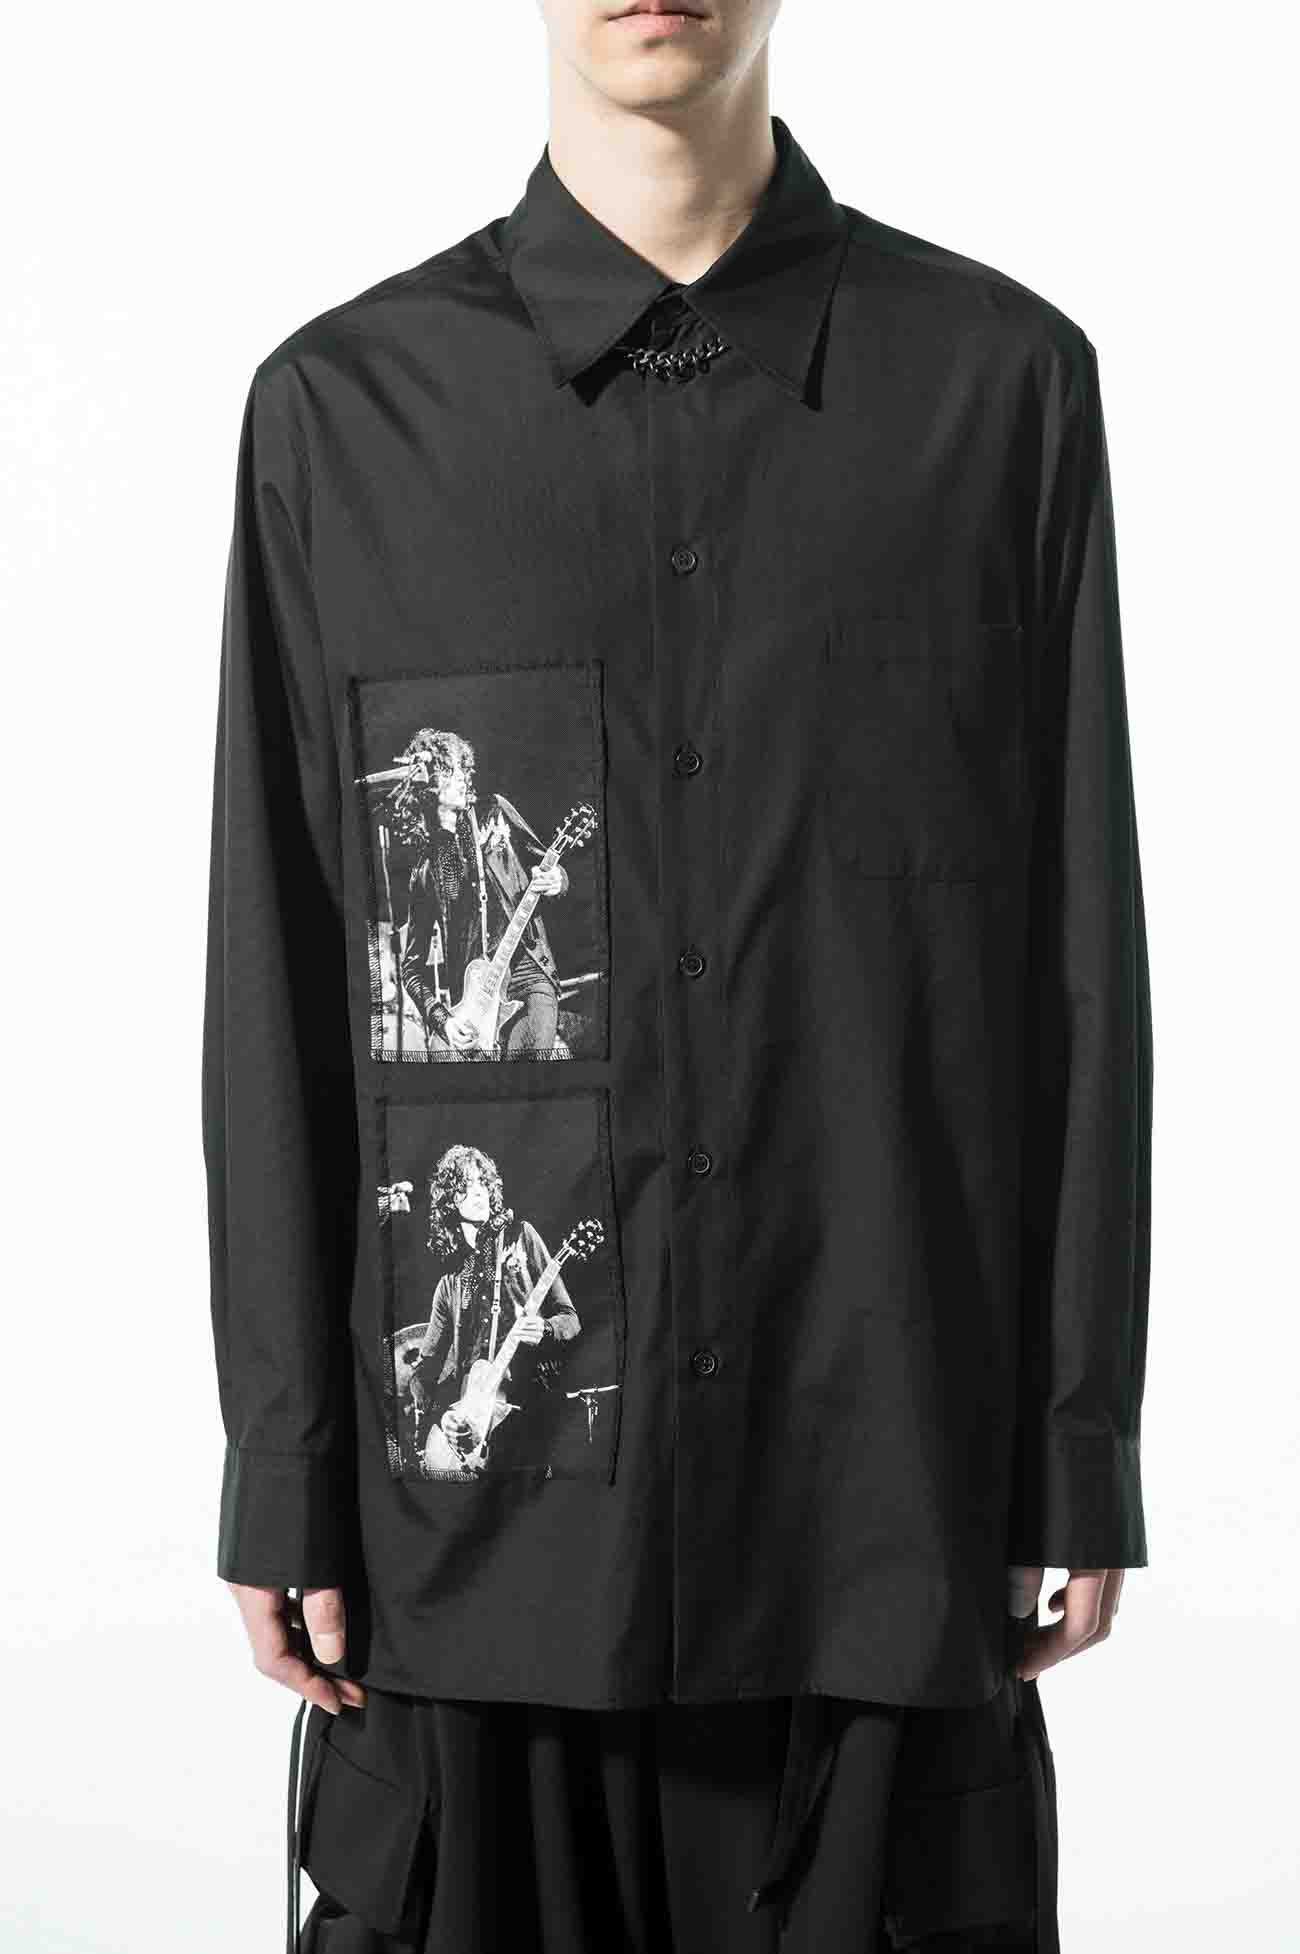 S'YTE × marquee club(TM) 1968 100/2 Broad Omnibus Printed Patch Shirt